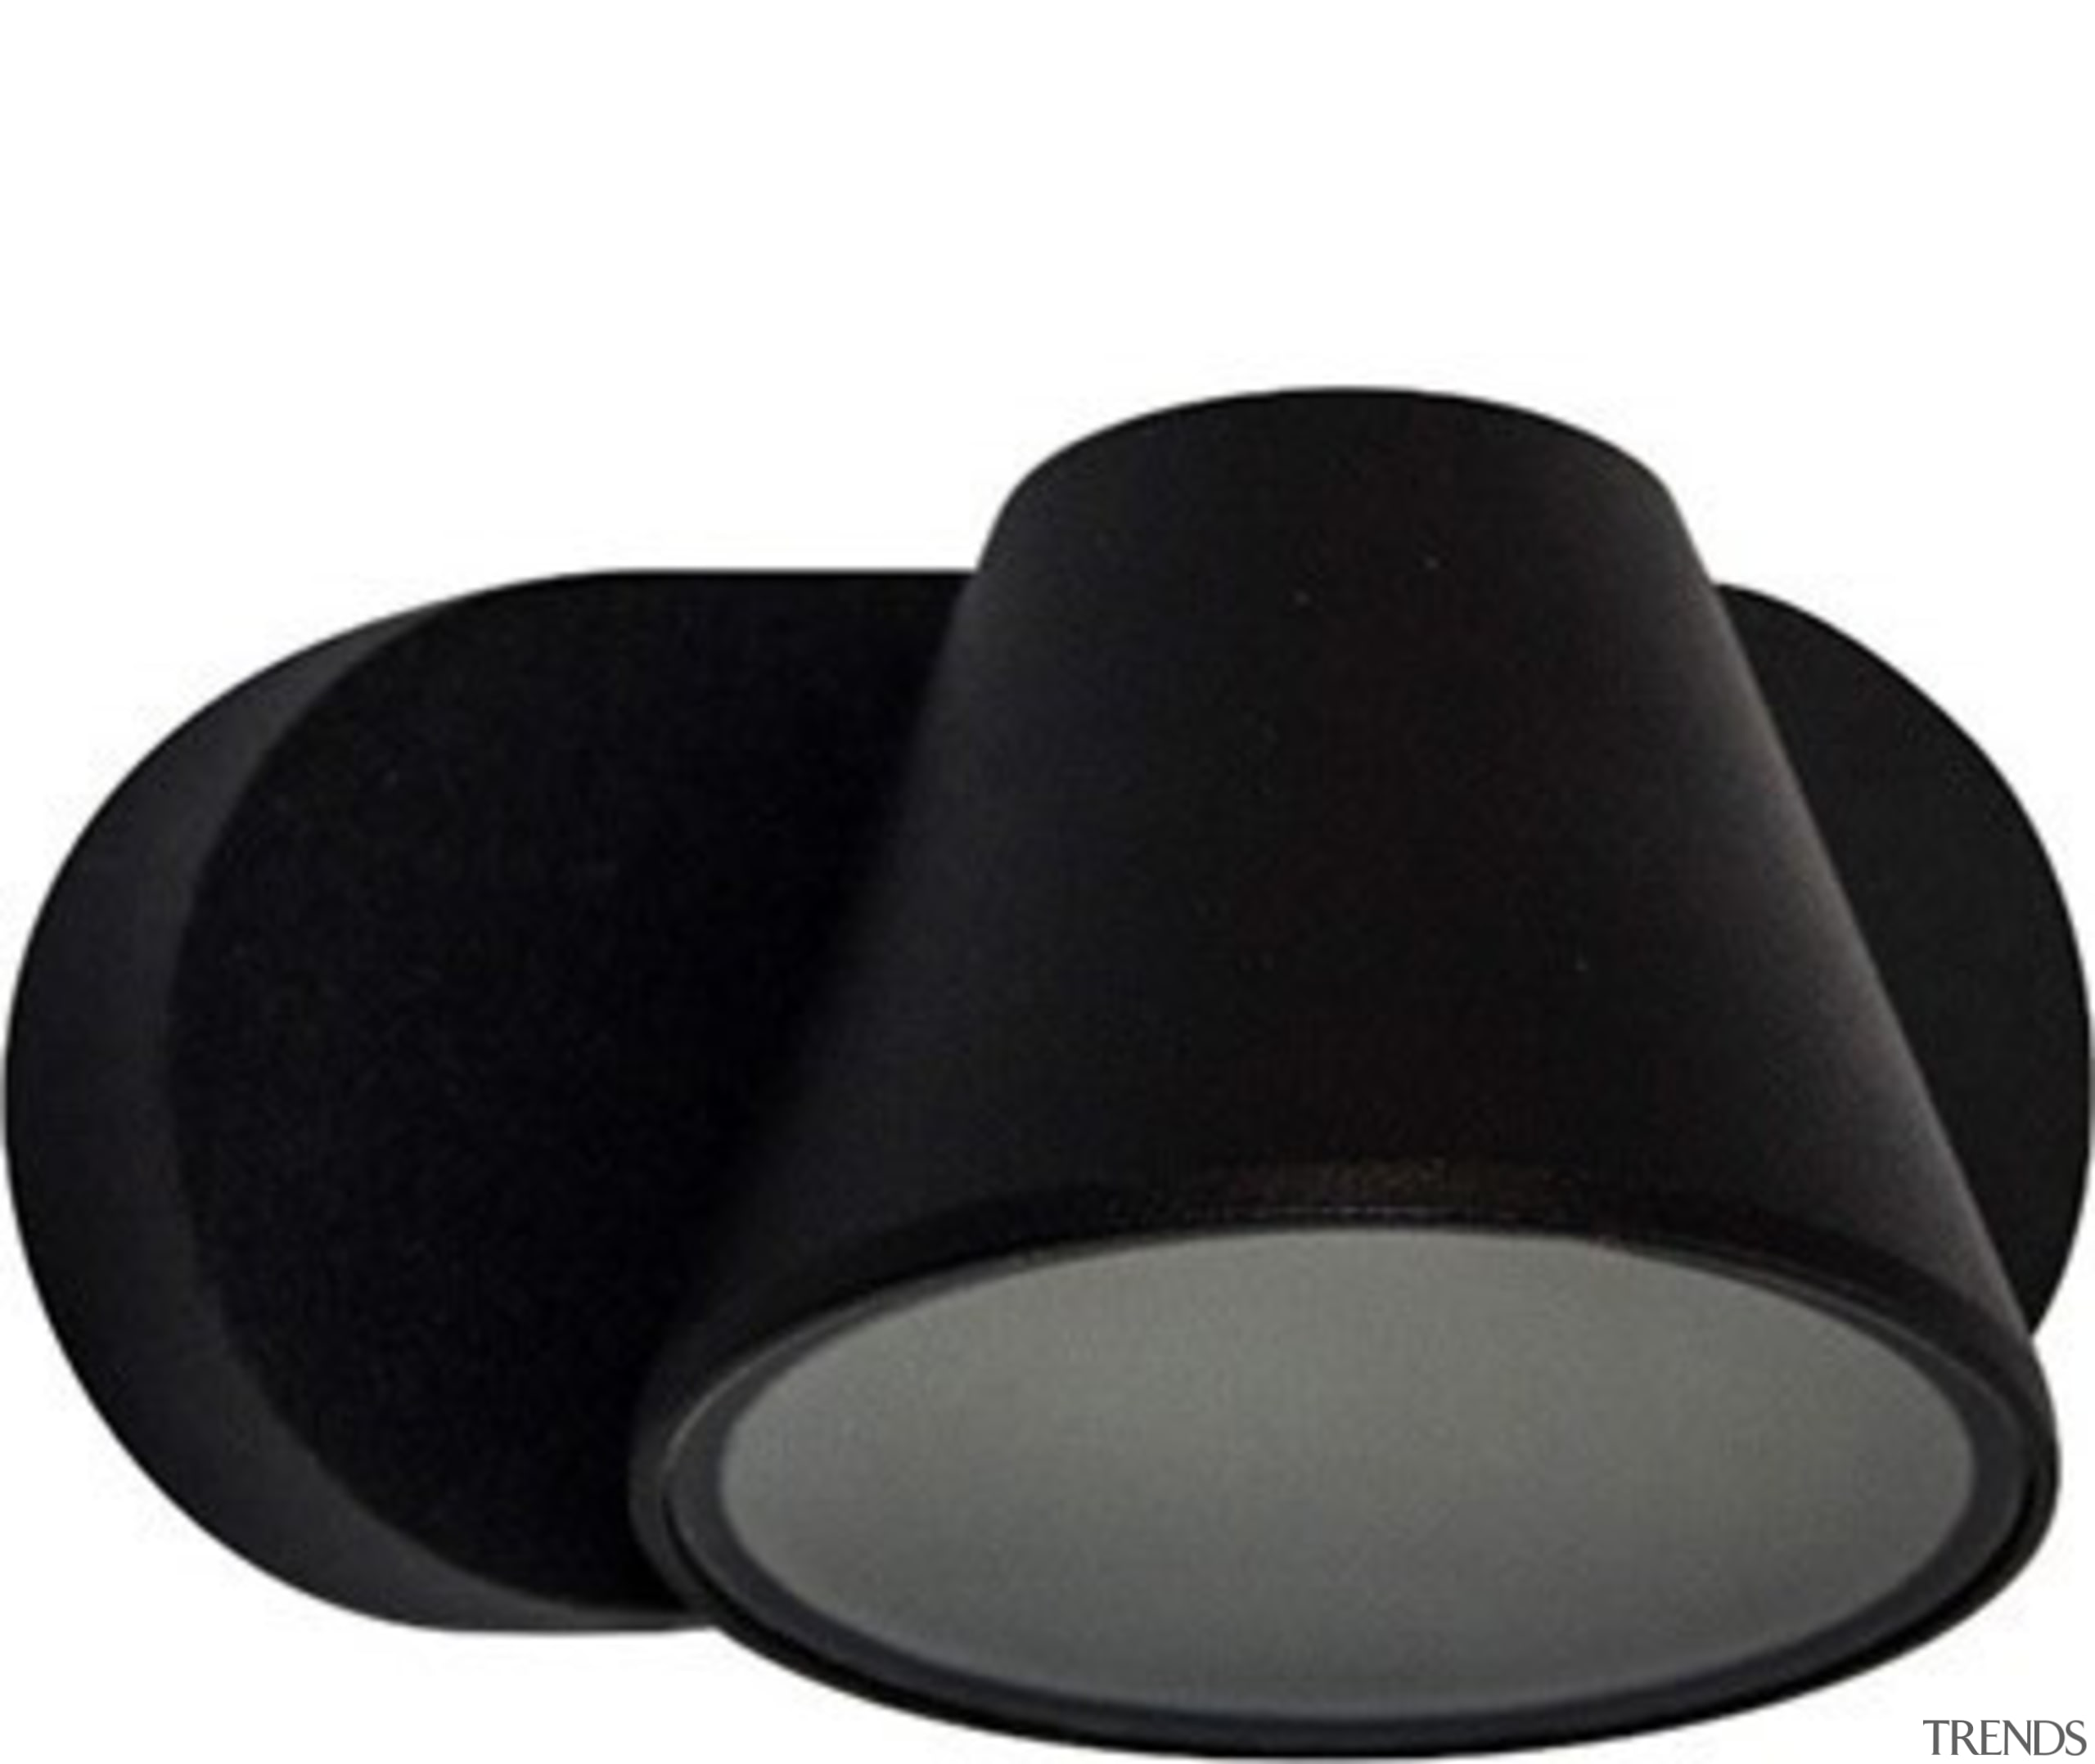 FeaturesThese LED Vega wall lights are perfect for black, light fixture, lighting, product, product design, black, white